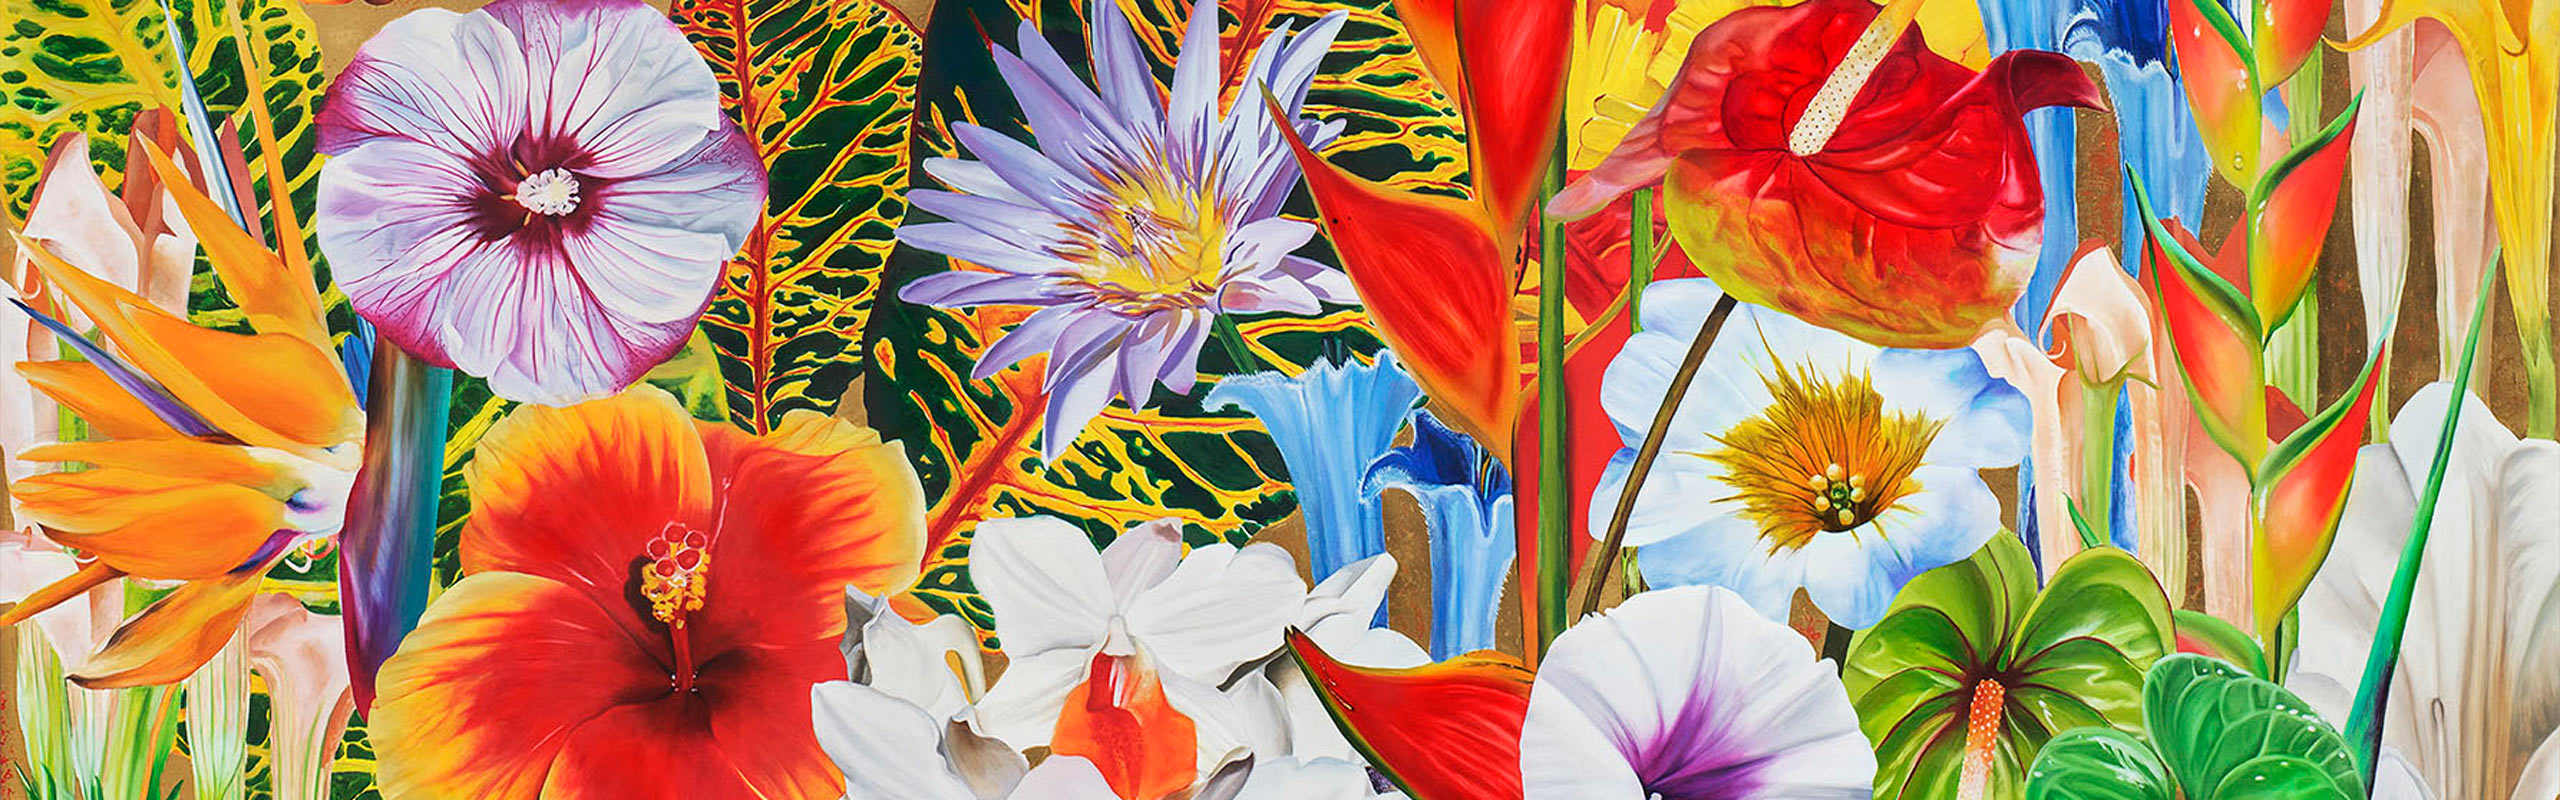 Gild the Lily 1 by Rolon artist banner